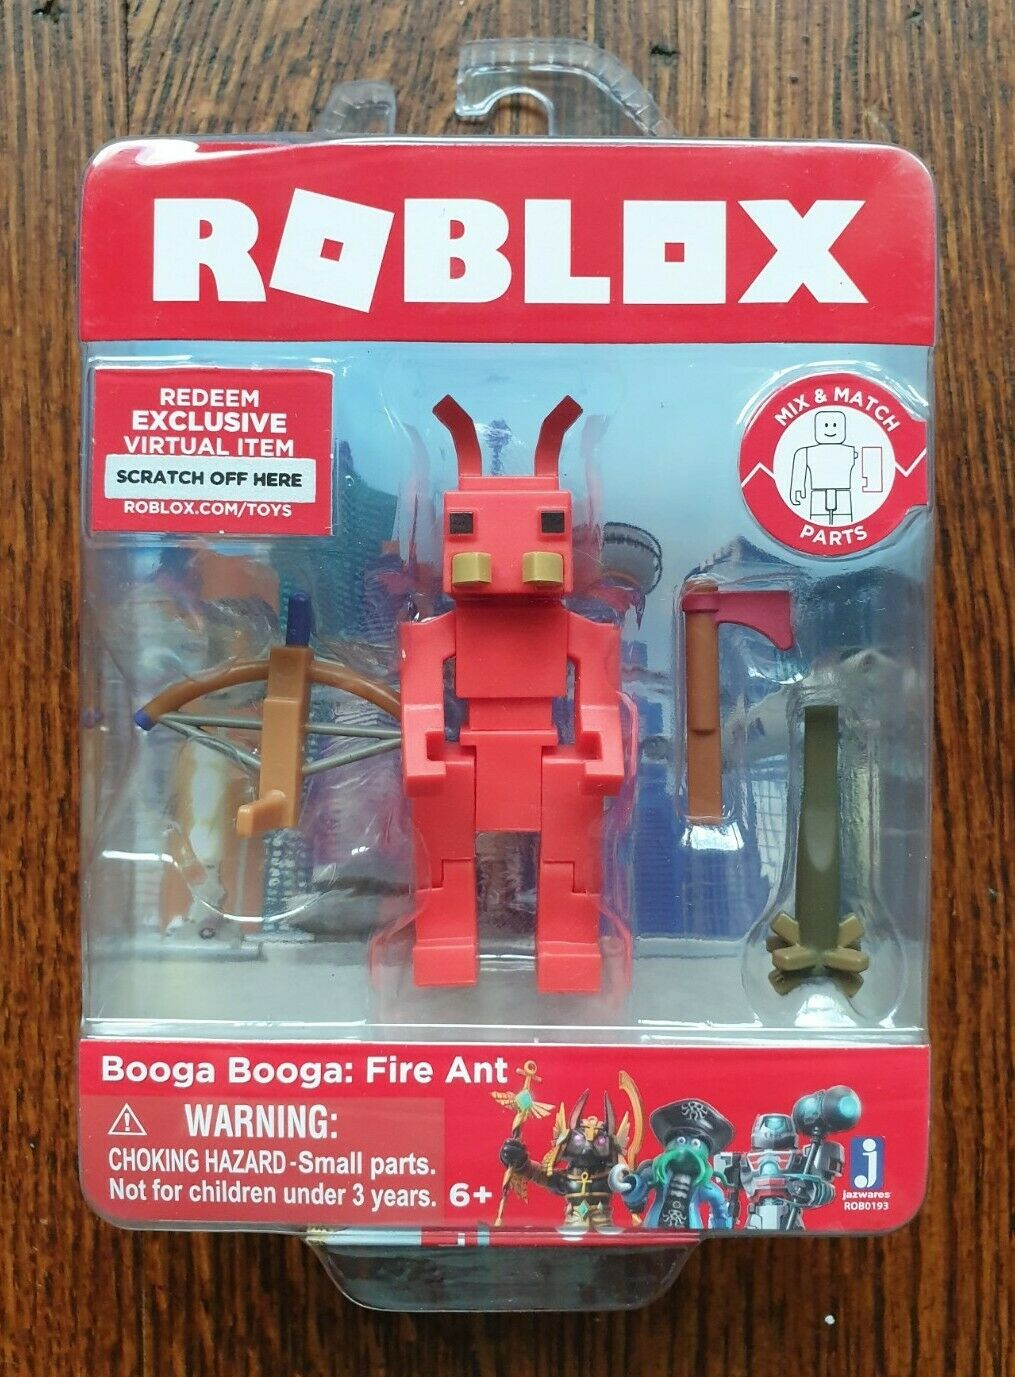 Virtual Roblox Code Roblox Booga Booga Fire Ant 3 Action Figure W Exclusive Virtual Item Code For Sale Online